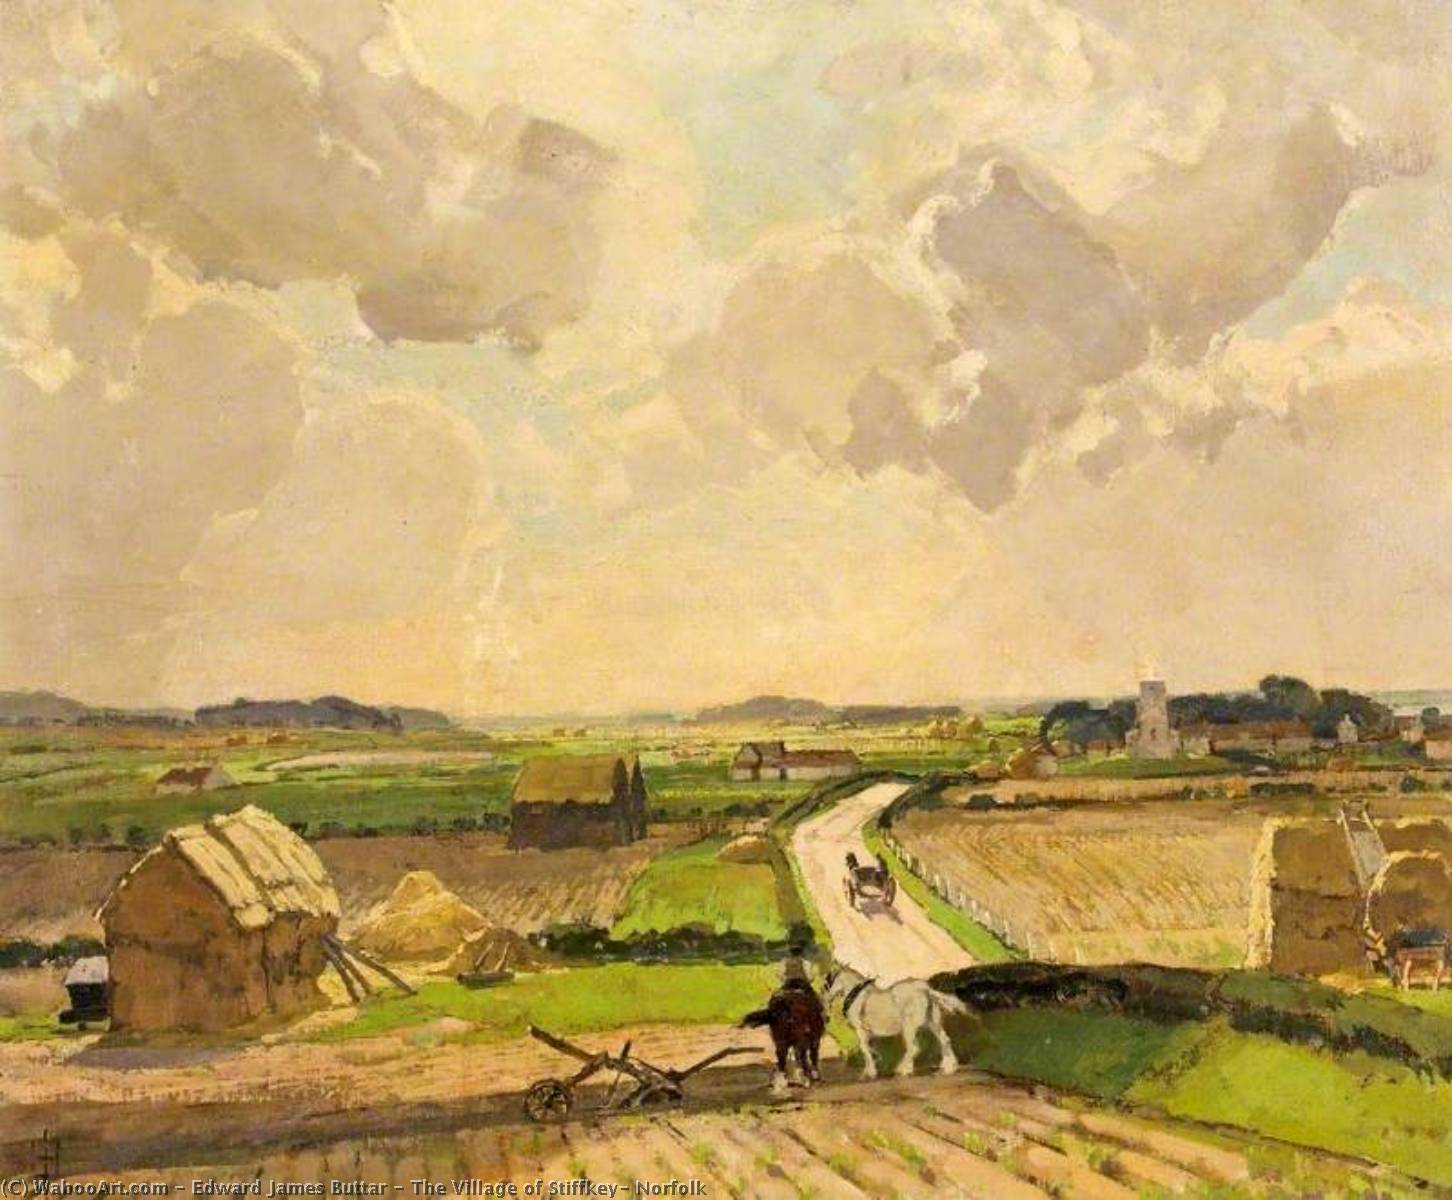 The Village of Stiffkey, Norfolk by Edward James Buttar | Paintings Reproductions Edward James Buttar | WahooArt.com